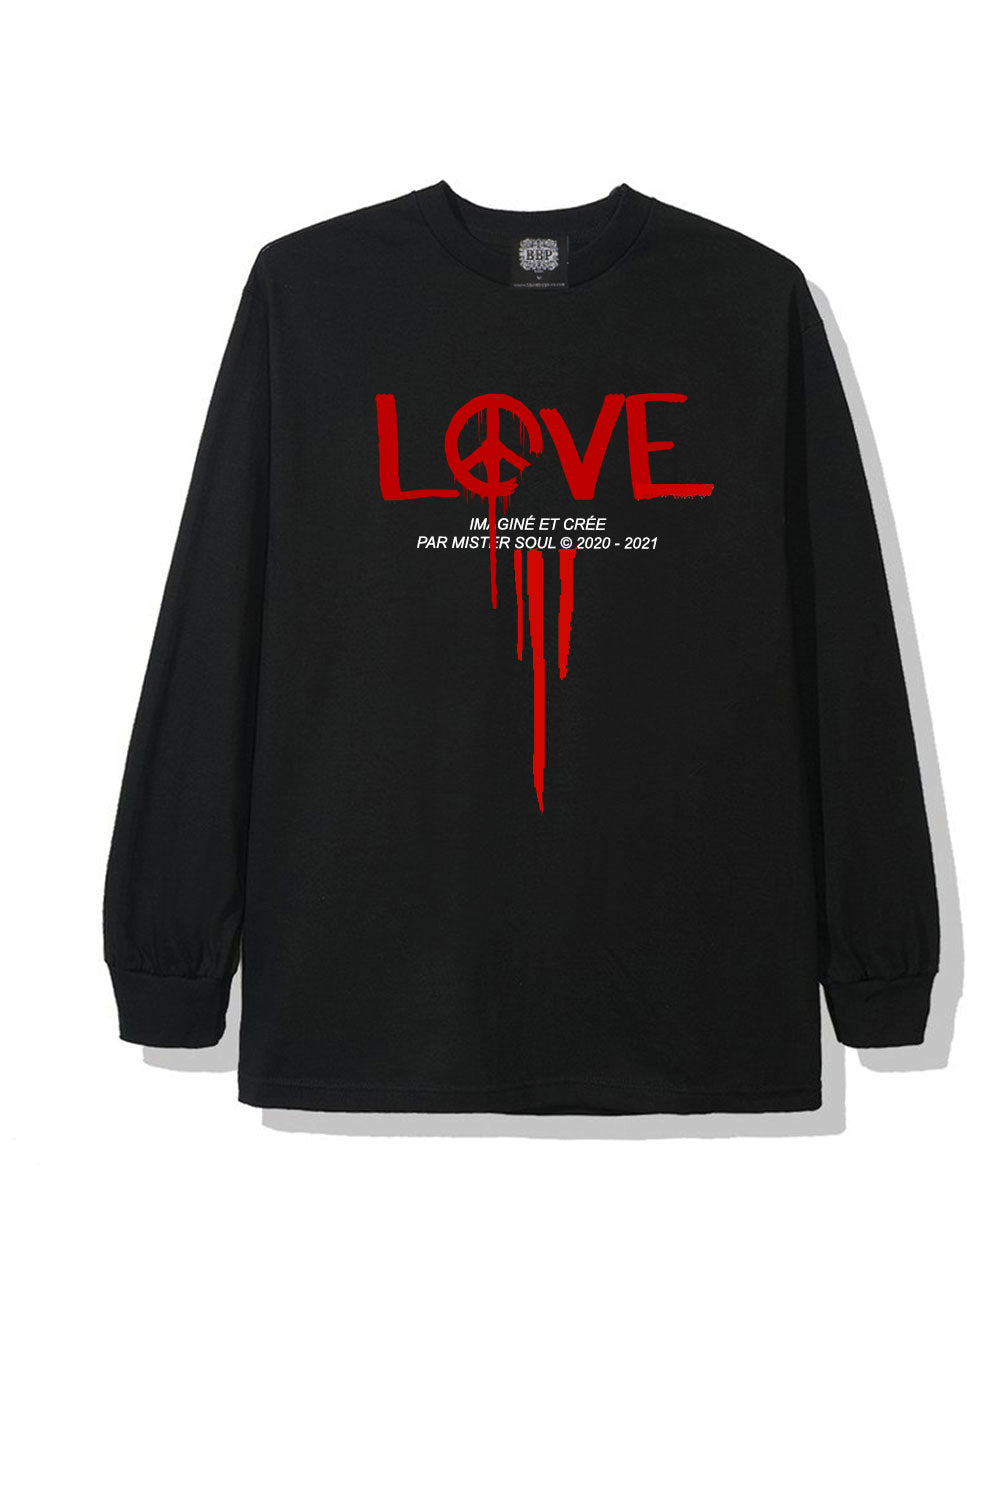 Leroyaume T-shirt Love